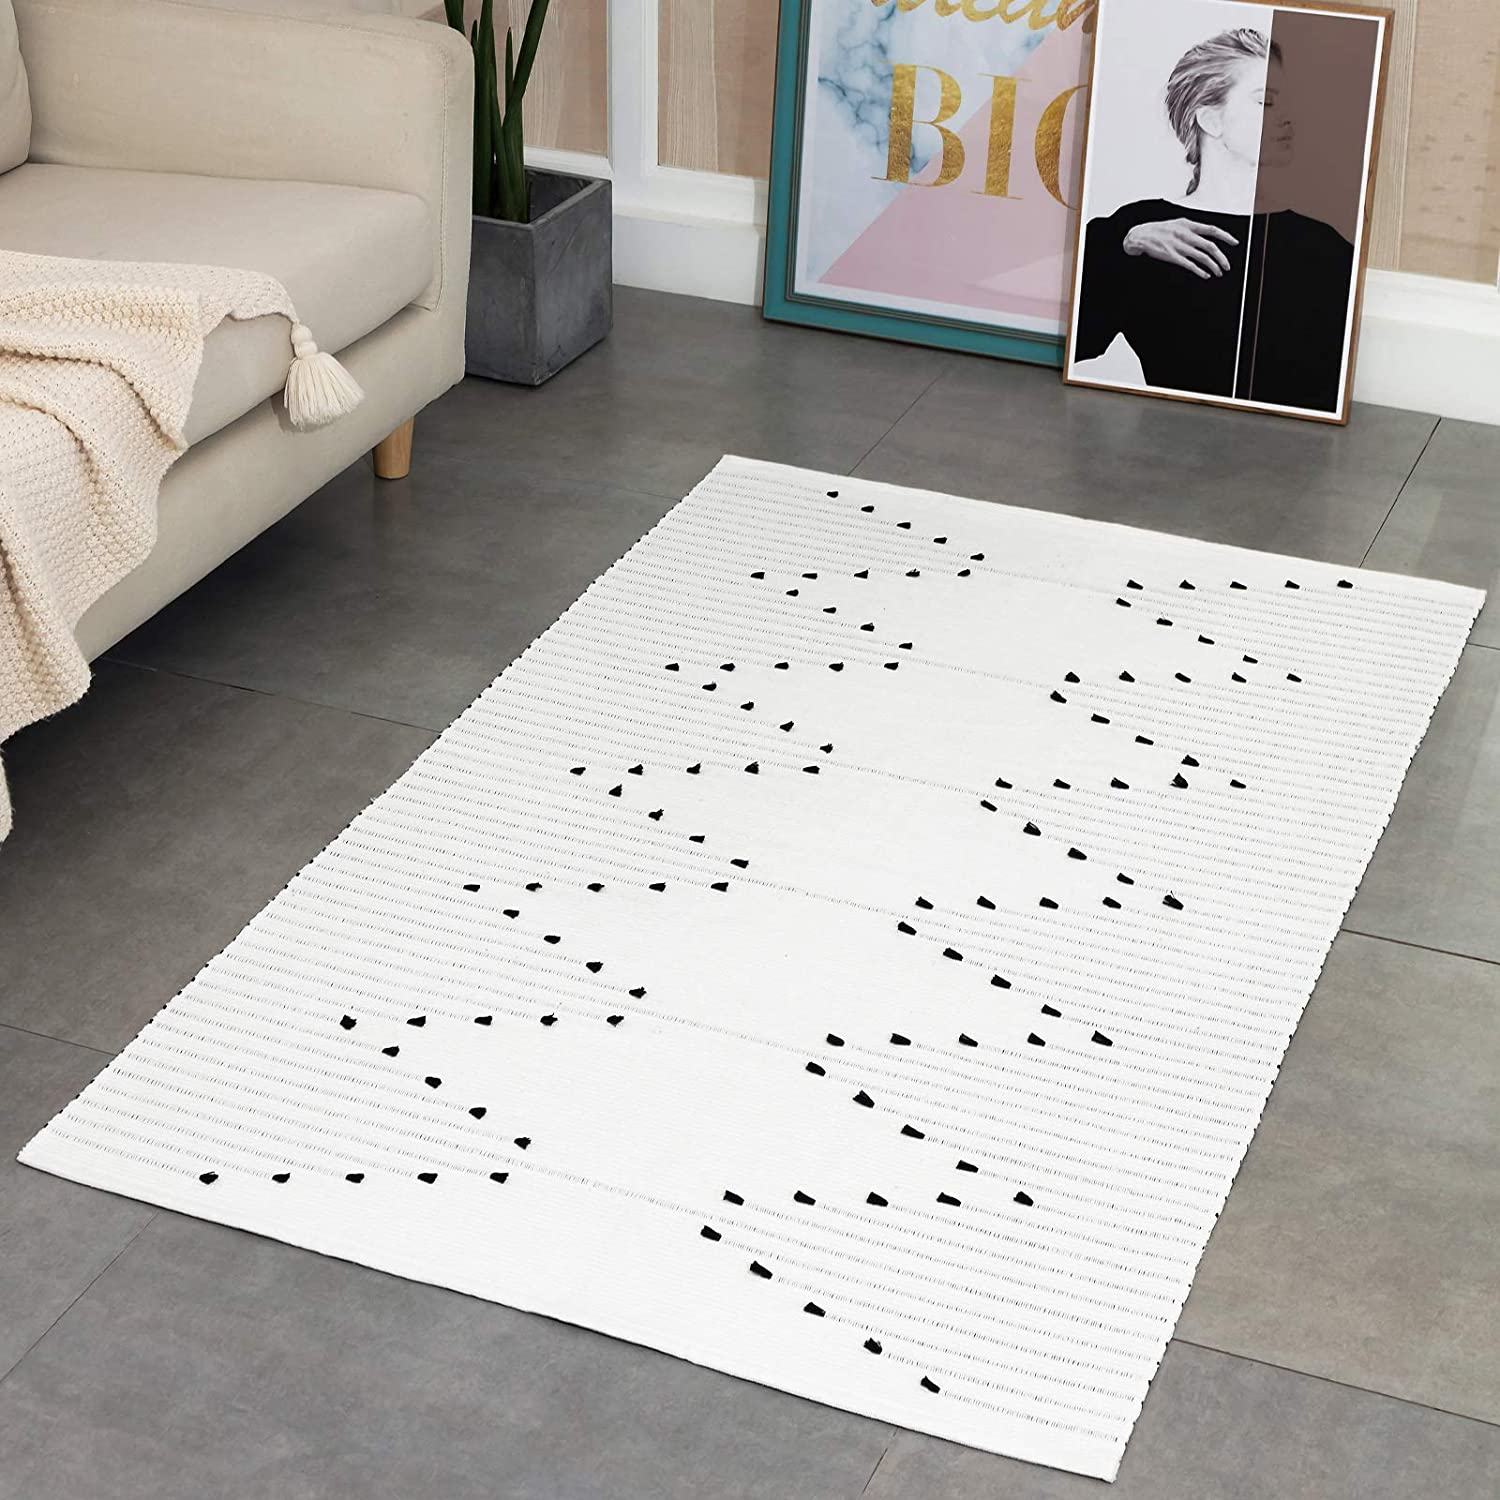 Off White Moroccan Boho Bathroom Rug, Cotton Woven Small Hallway Bath Mats,  Flatweave Washable Long Rugs for Front Door Kitchen, Natrural Carpet 20'x20